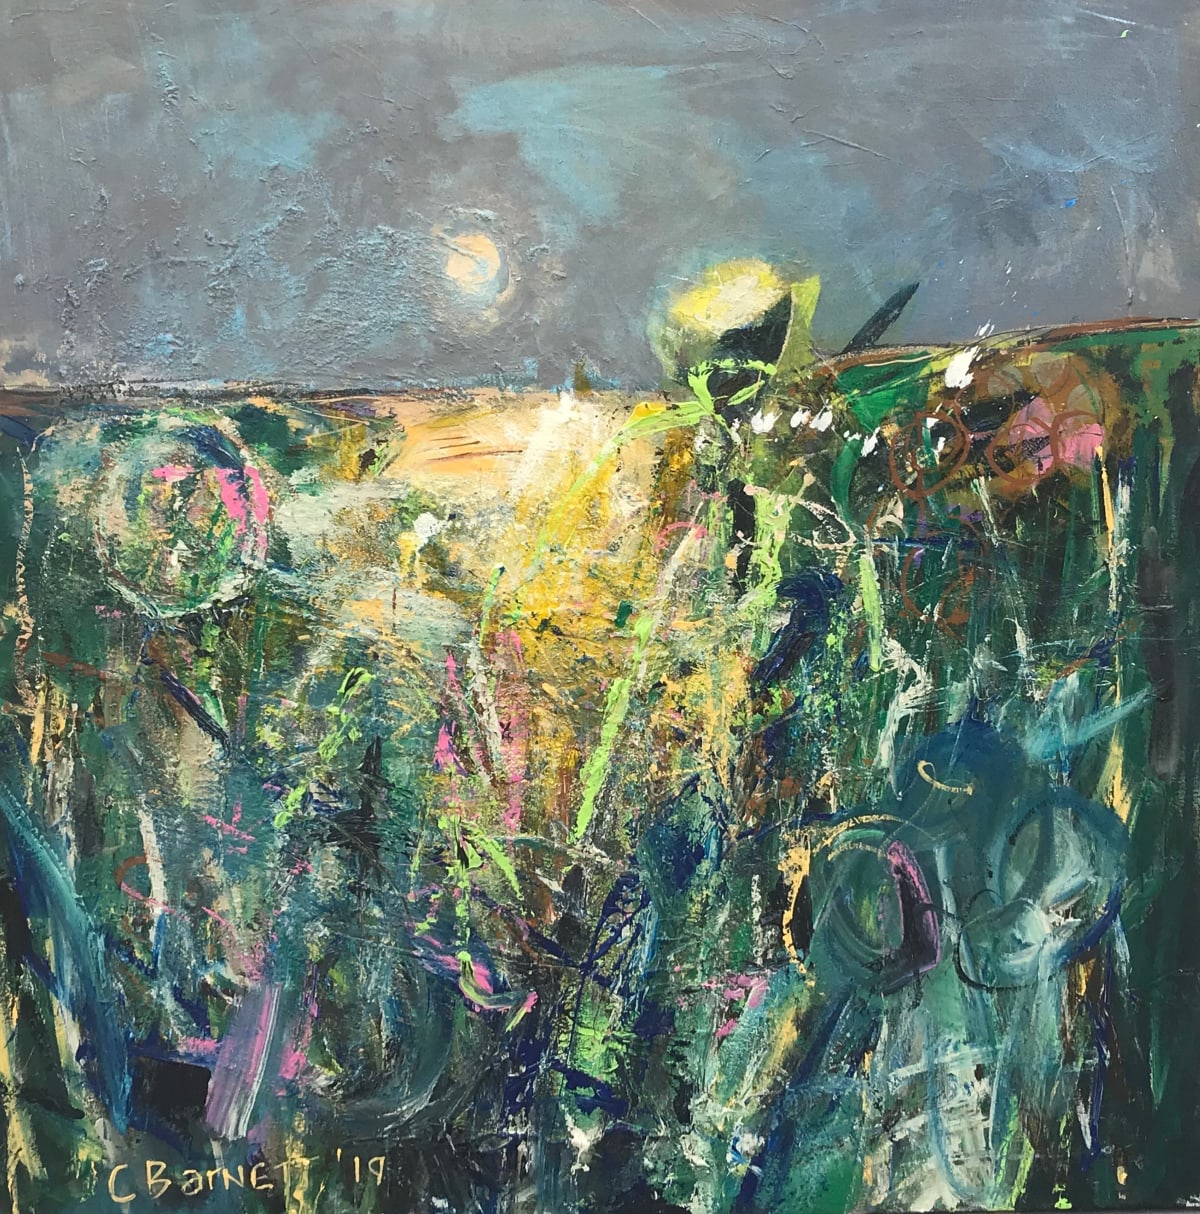 Claire Barnett, Spring on the chase, 2019